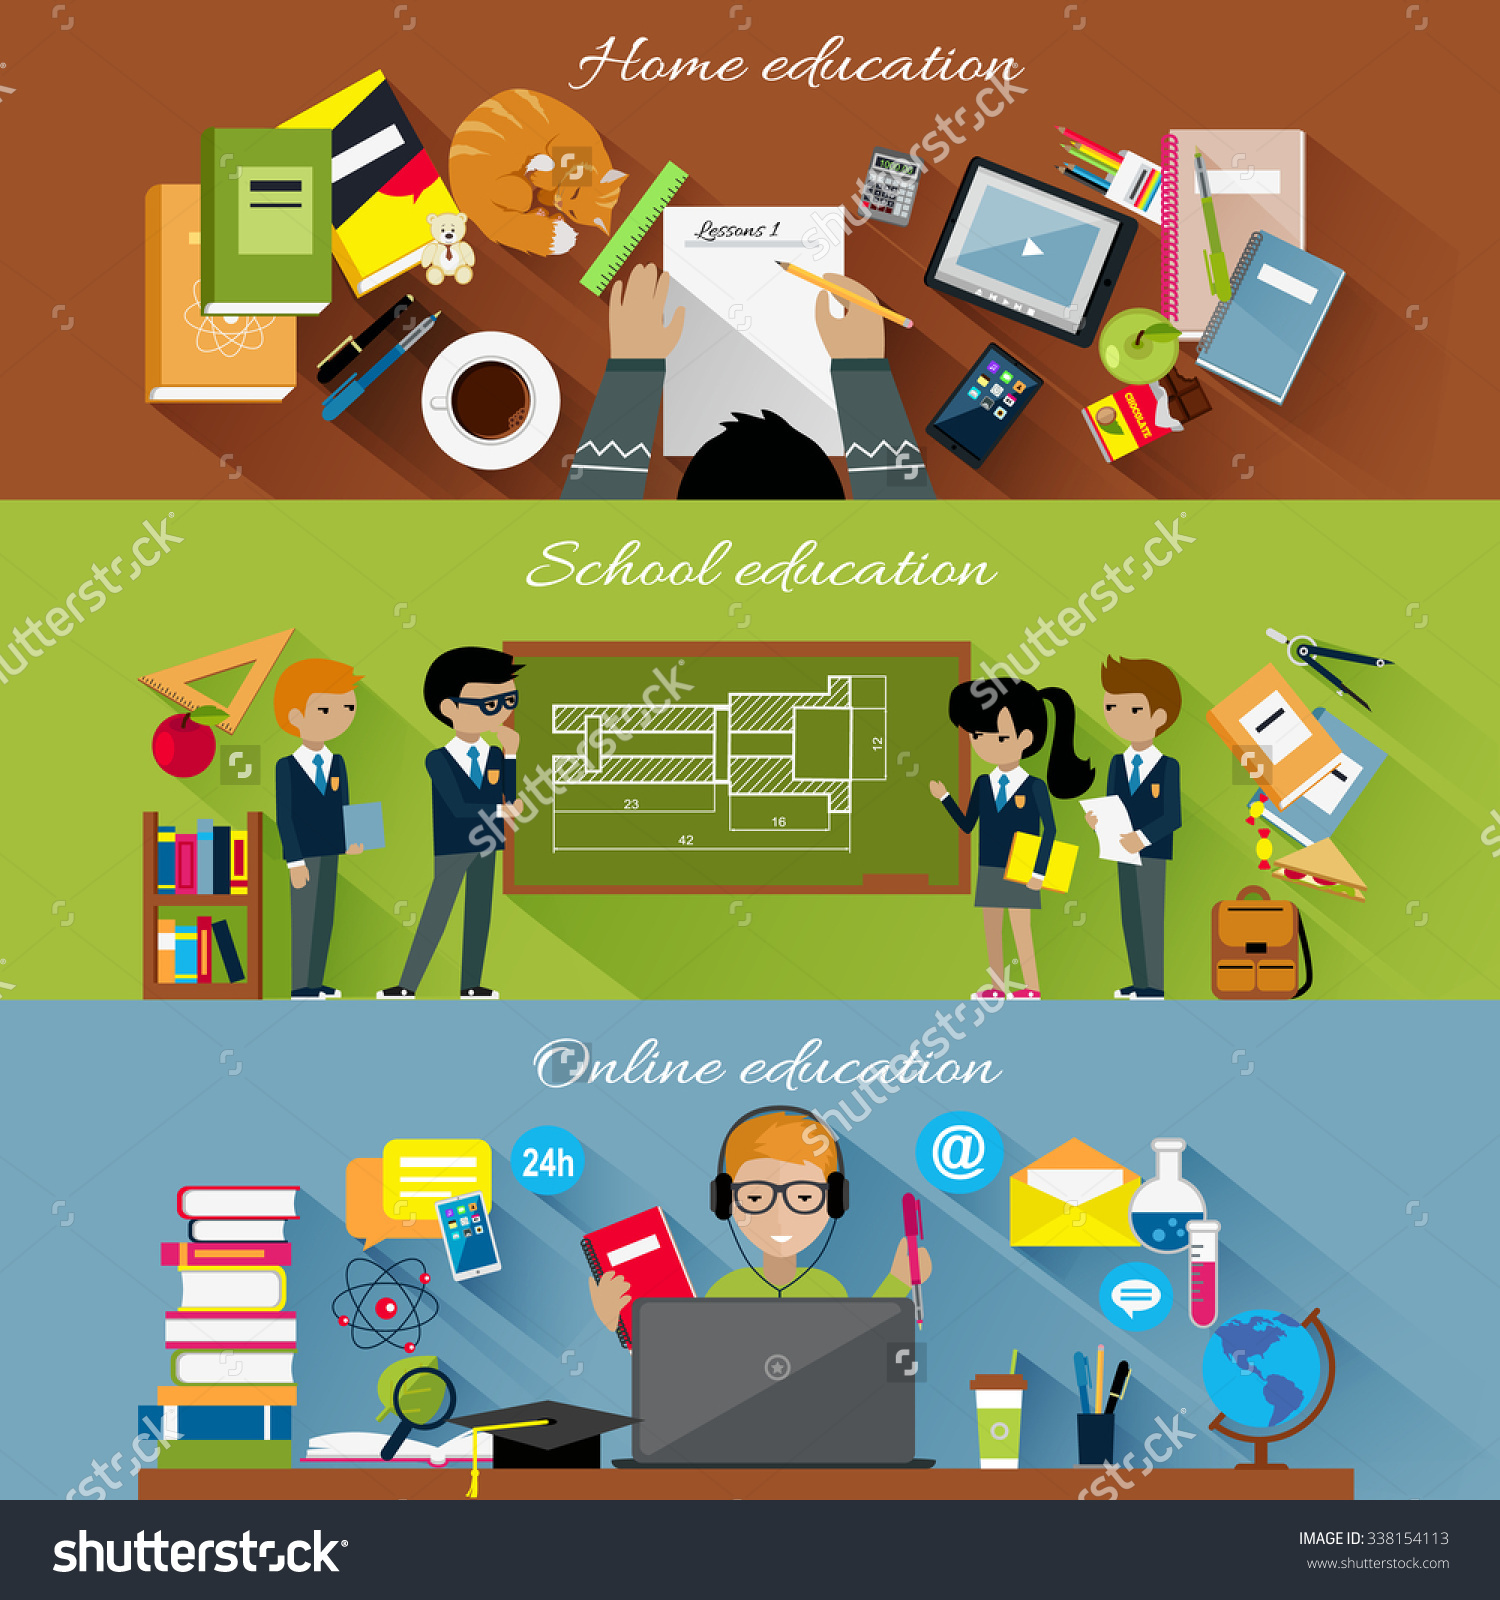 Home School Online Education Concept Internet Stock Vector.